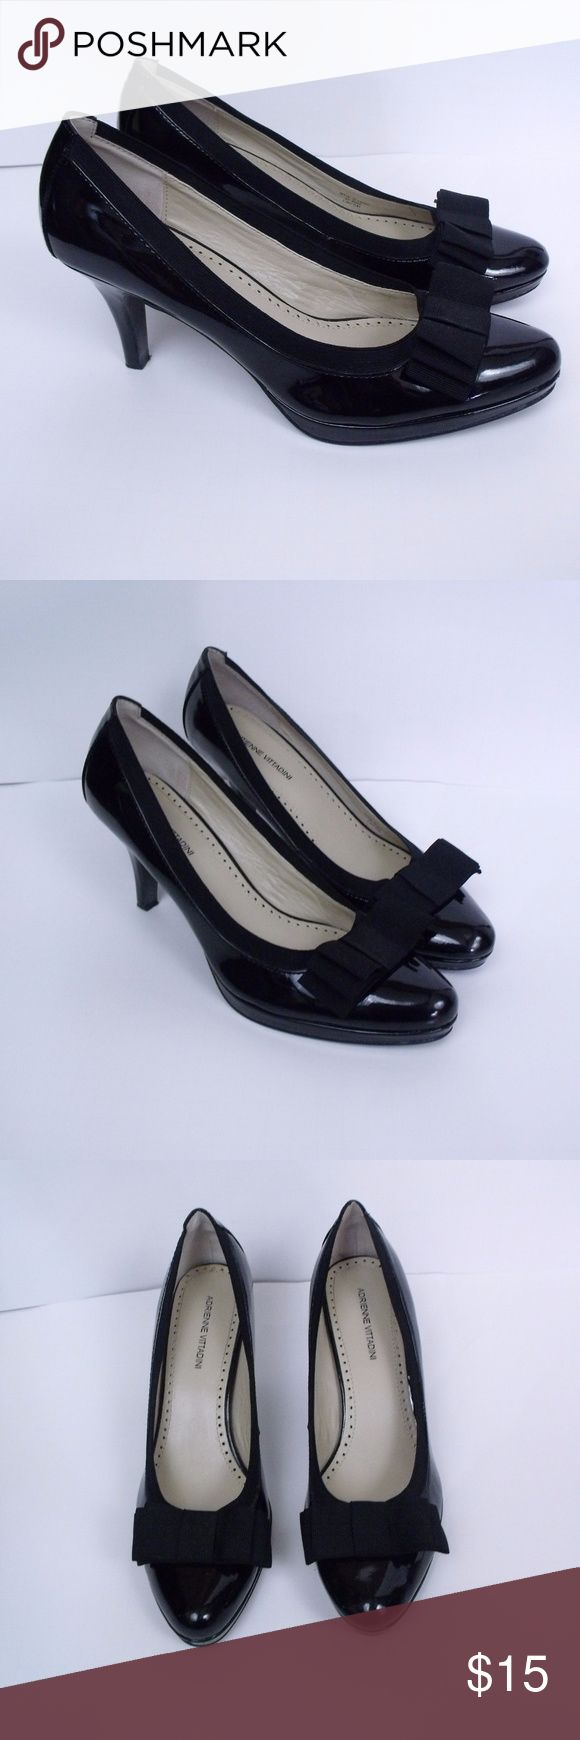 """Adrienne Vittadini Posy Heels Size: 9M  ~ Adrienne Vittadini """"Posy"""" Heels. Heels are accented with a bow on the front. Heels are 3"""" high. ~ Heels are in nice condition with very minor wear. Adrienne Vittadini Shoes Heels"""